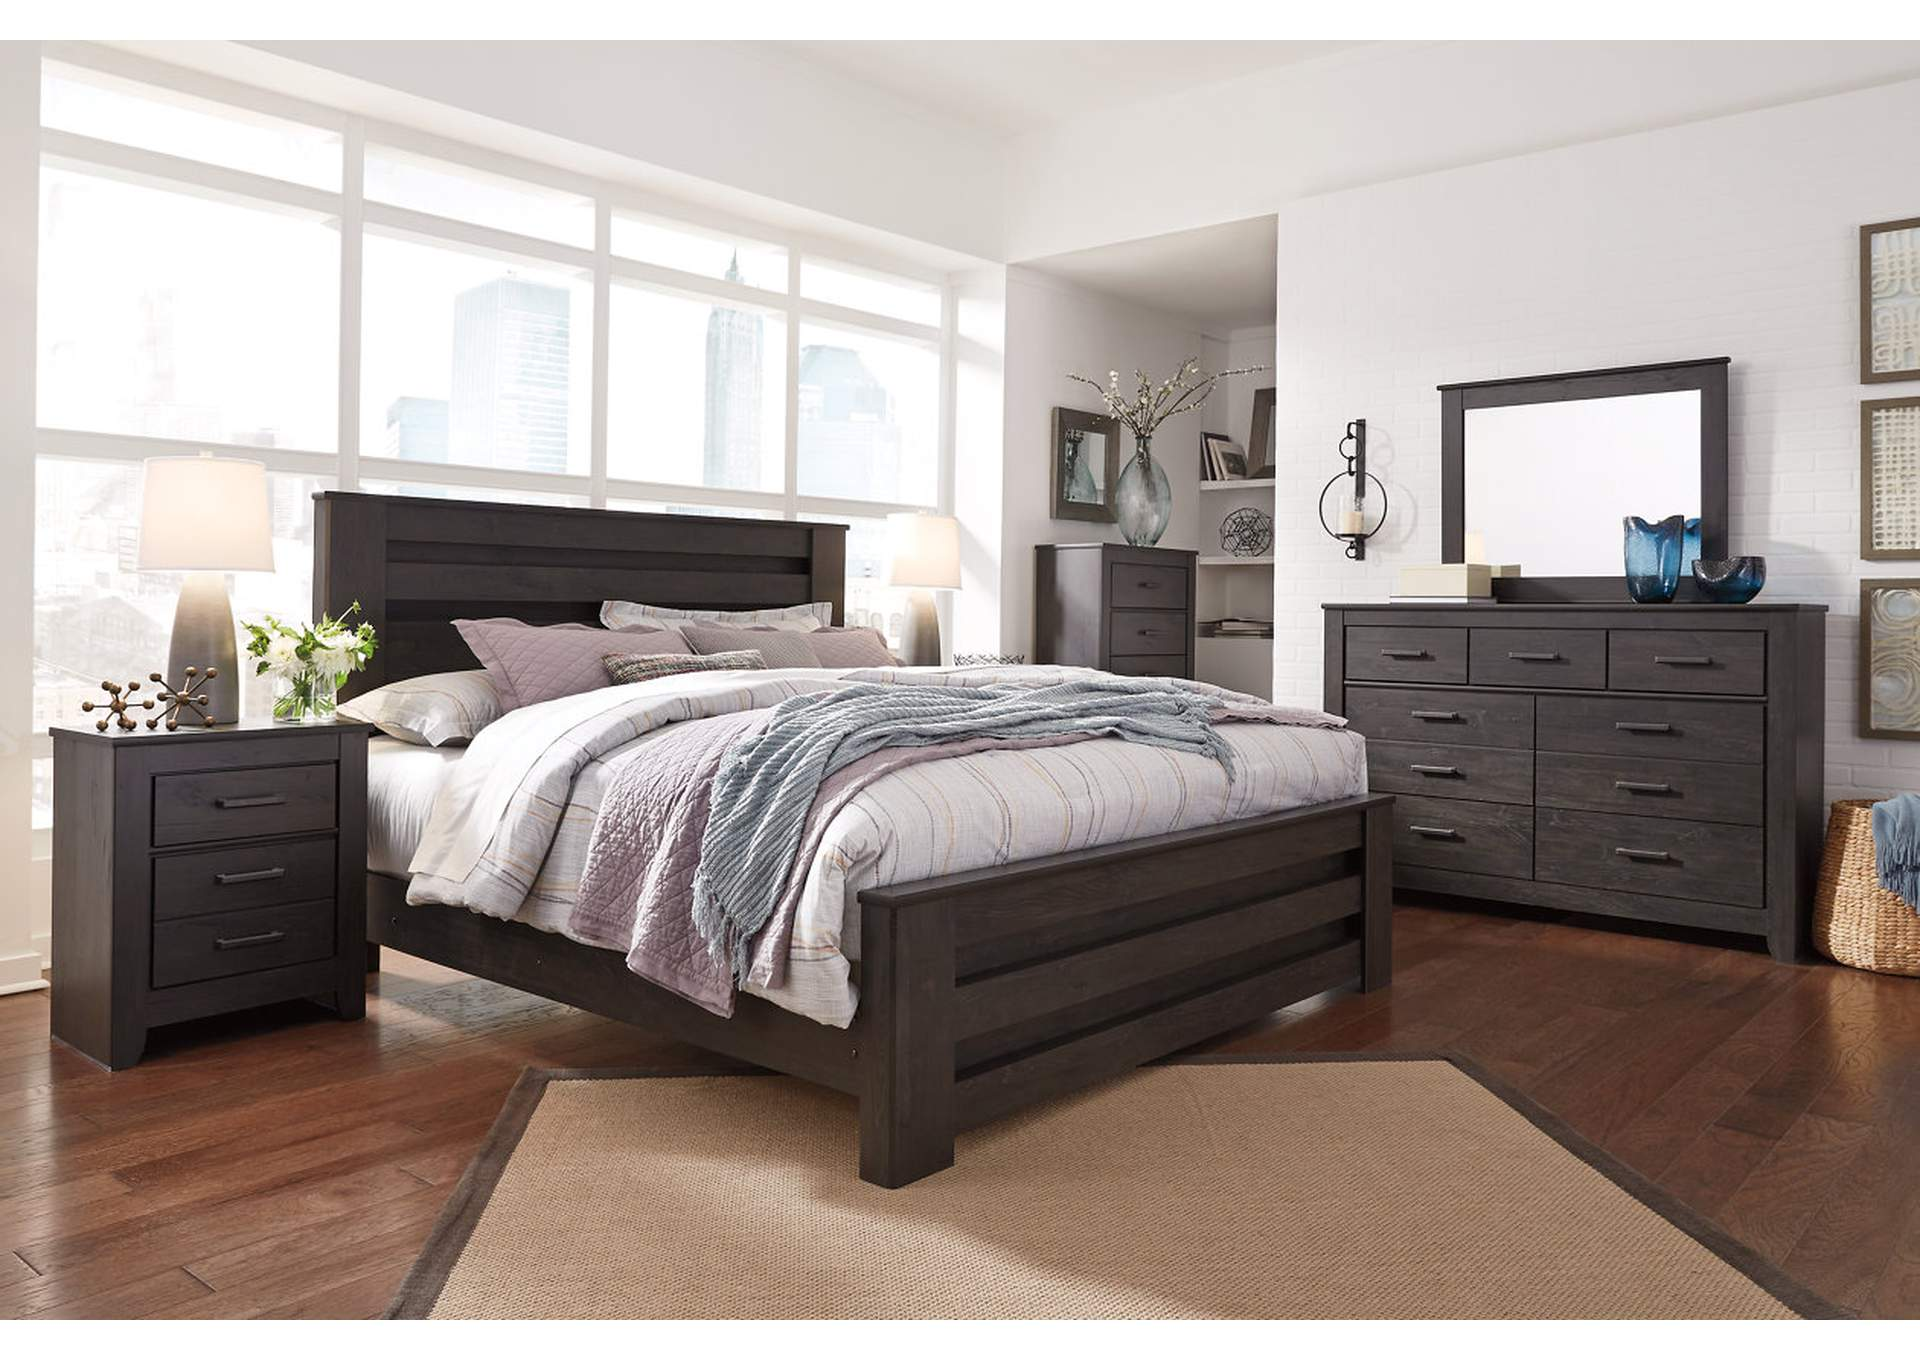 Brinxton Black Full Panel Bed and Dresser w/Mirror,Signature Design By Ashley